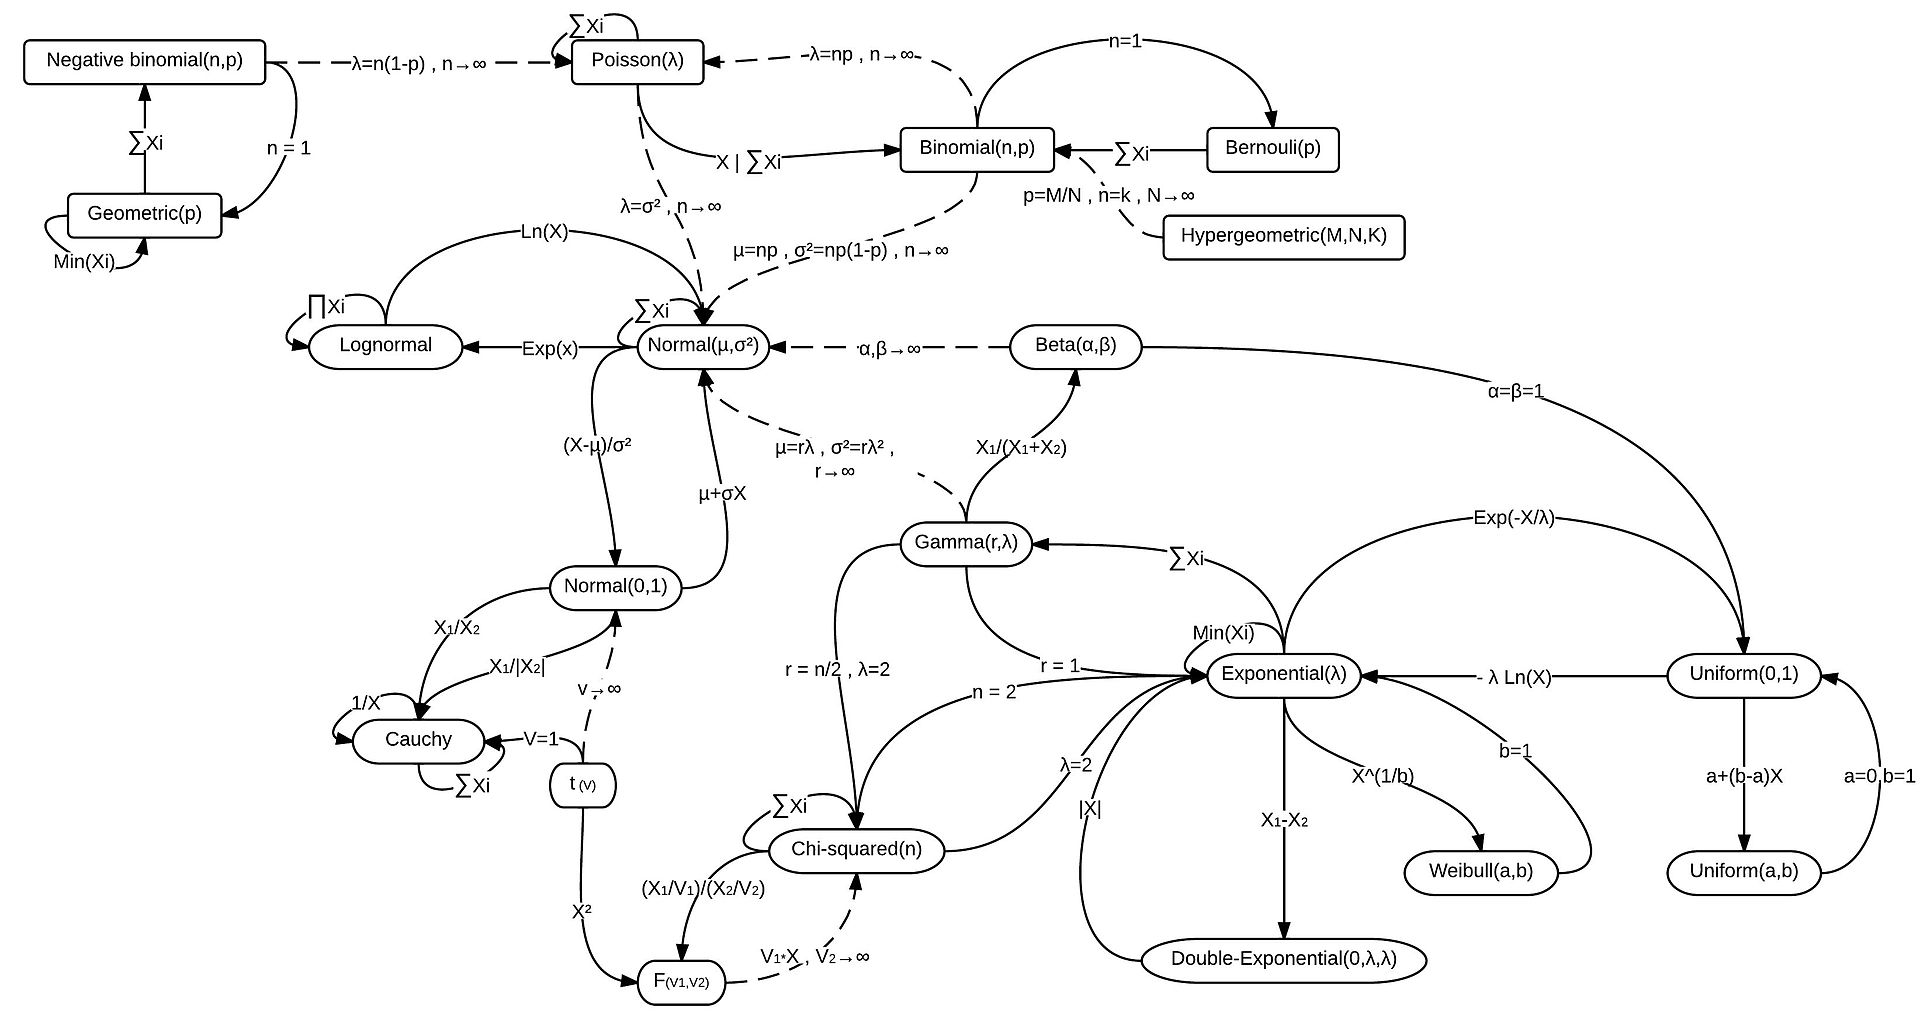 Relationships among some of univariate probability distributions are illustrated with connected lines. dashed lines means approximate relationship, CC BY-SA 3.0 CC BY-SA 3.0, https://commons.wikimedia.org/w/index.php?curid=22628518